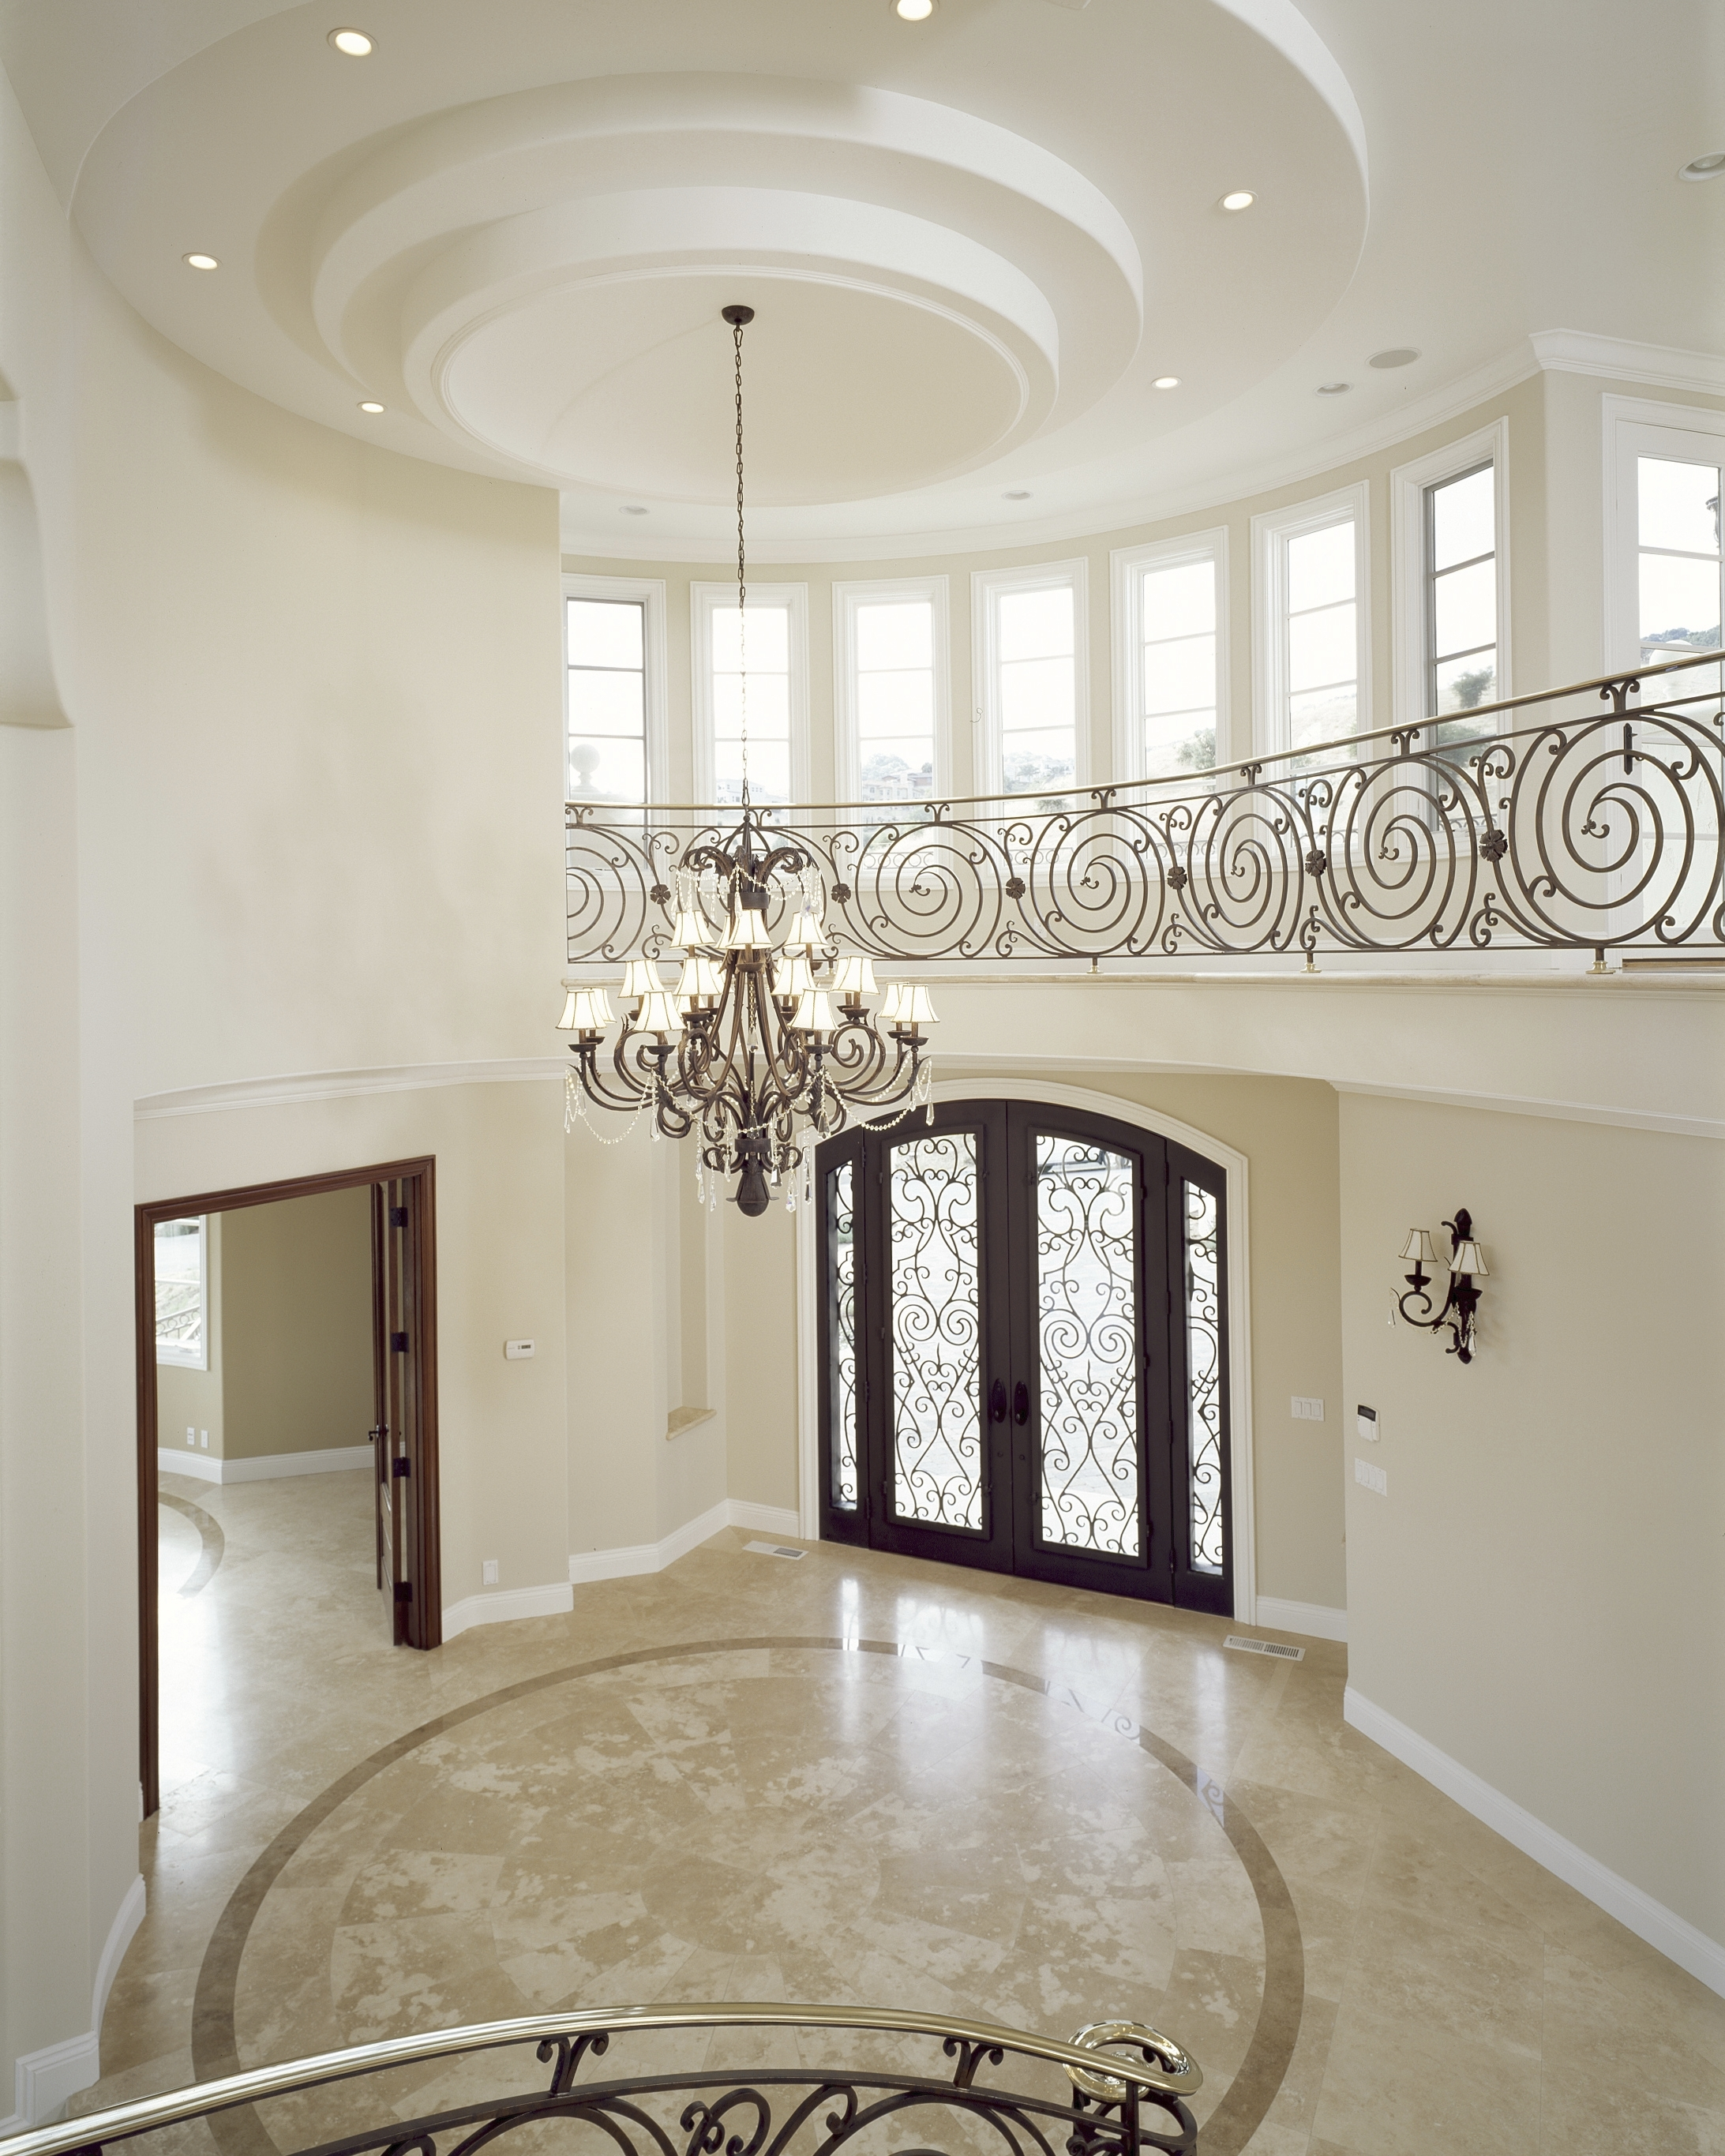 Latest Chandeliers Design : Amazing Brown Iron Holder Entryway Chandelier Within Small Hallway Chandeliers (View 11 of 20)